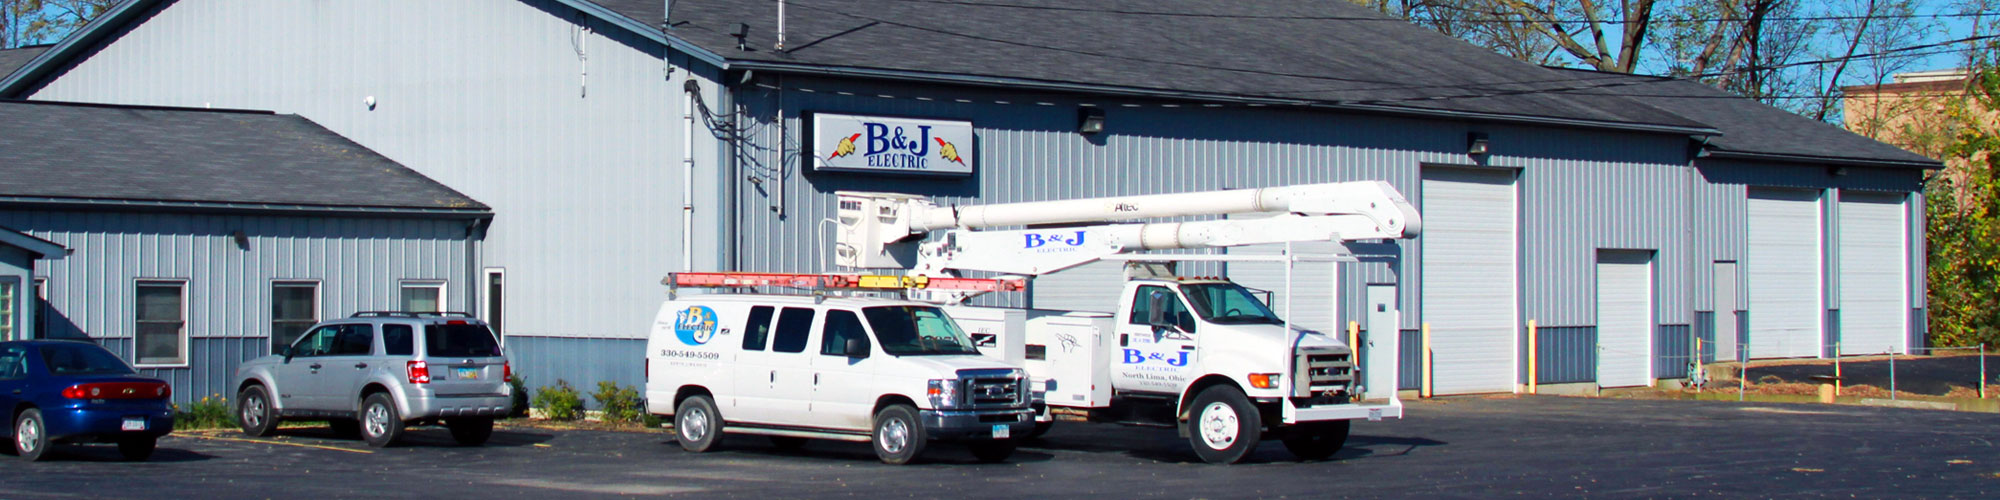 Electrical Contracting Services - B&J Electric